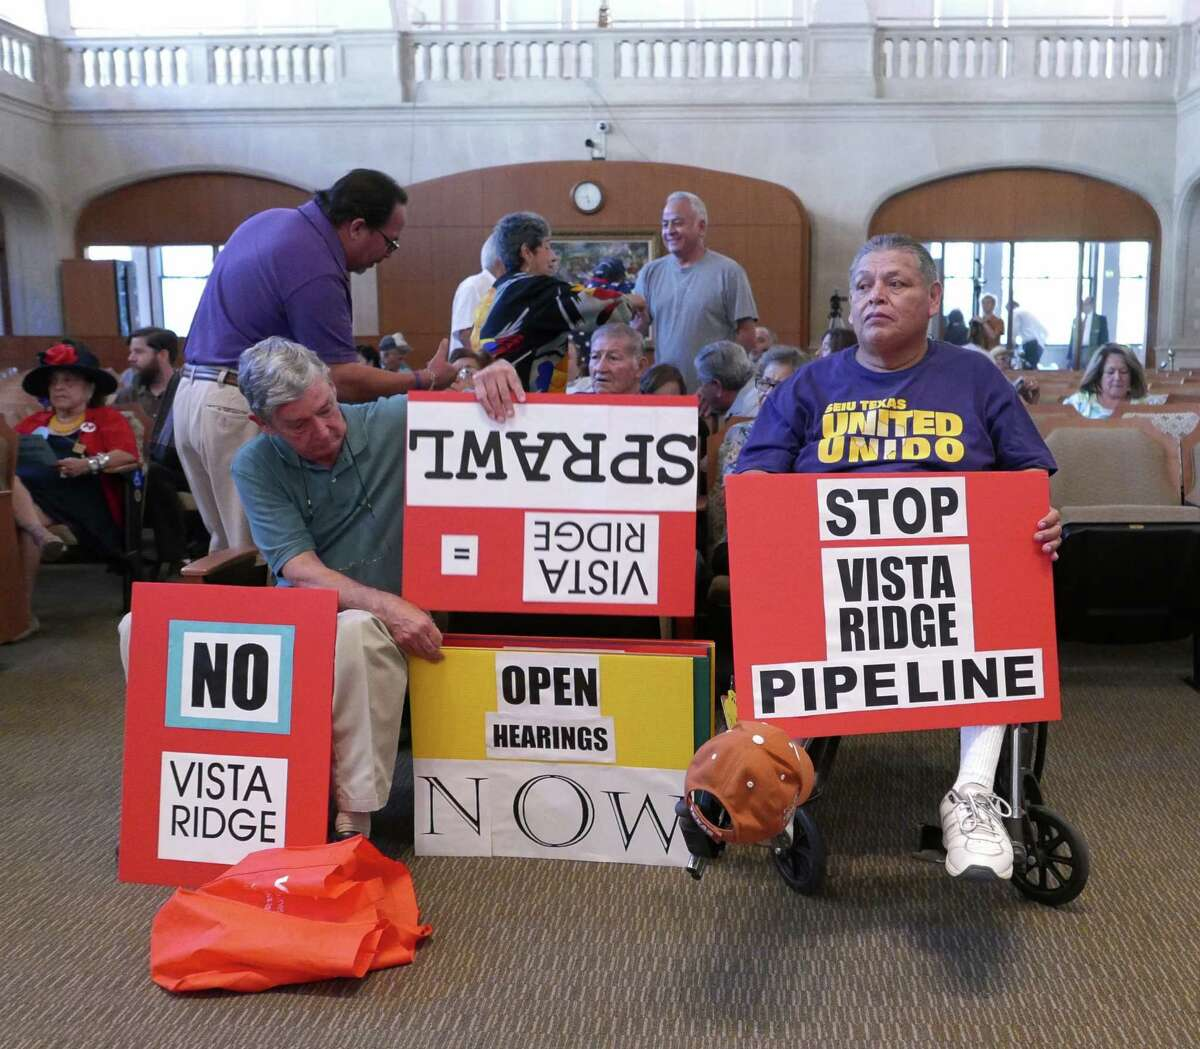 Arturo Hernandez, right, attends a City Council's meeting on Sept. 2, 2015 to discuss concerns about the proposed Vista Ridge water pipeline. A final report on the project and others to address the city's future water needs was released Thursday, Nov. 5, 2015.